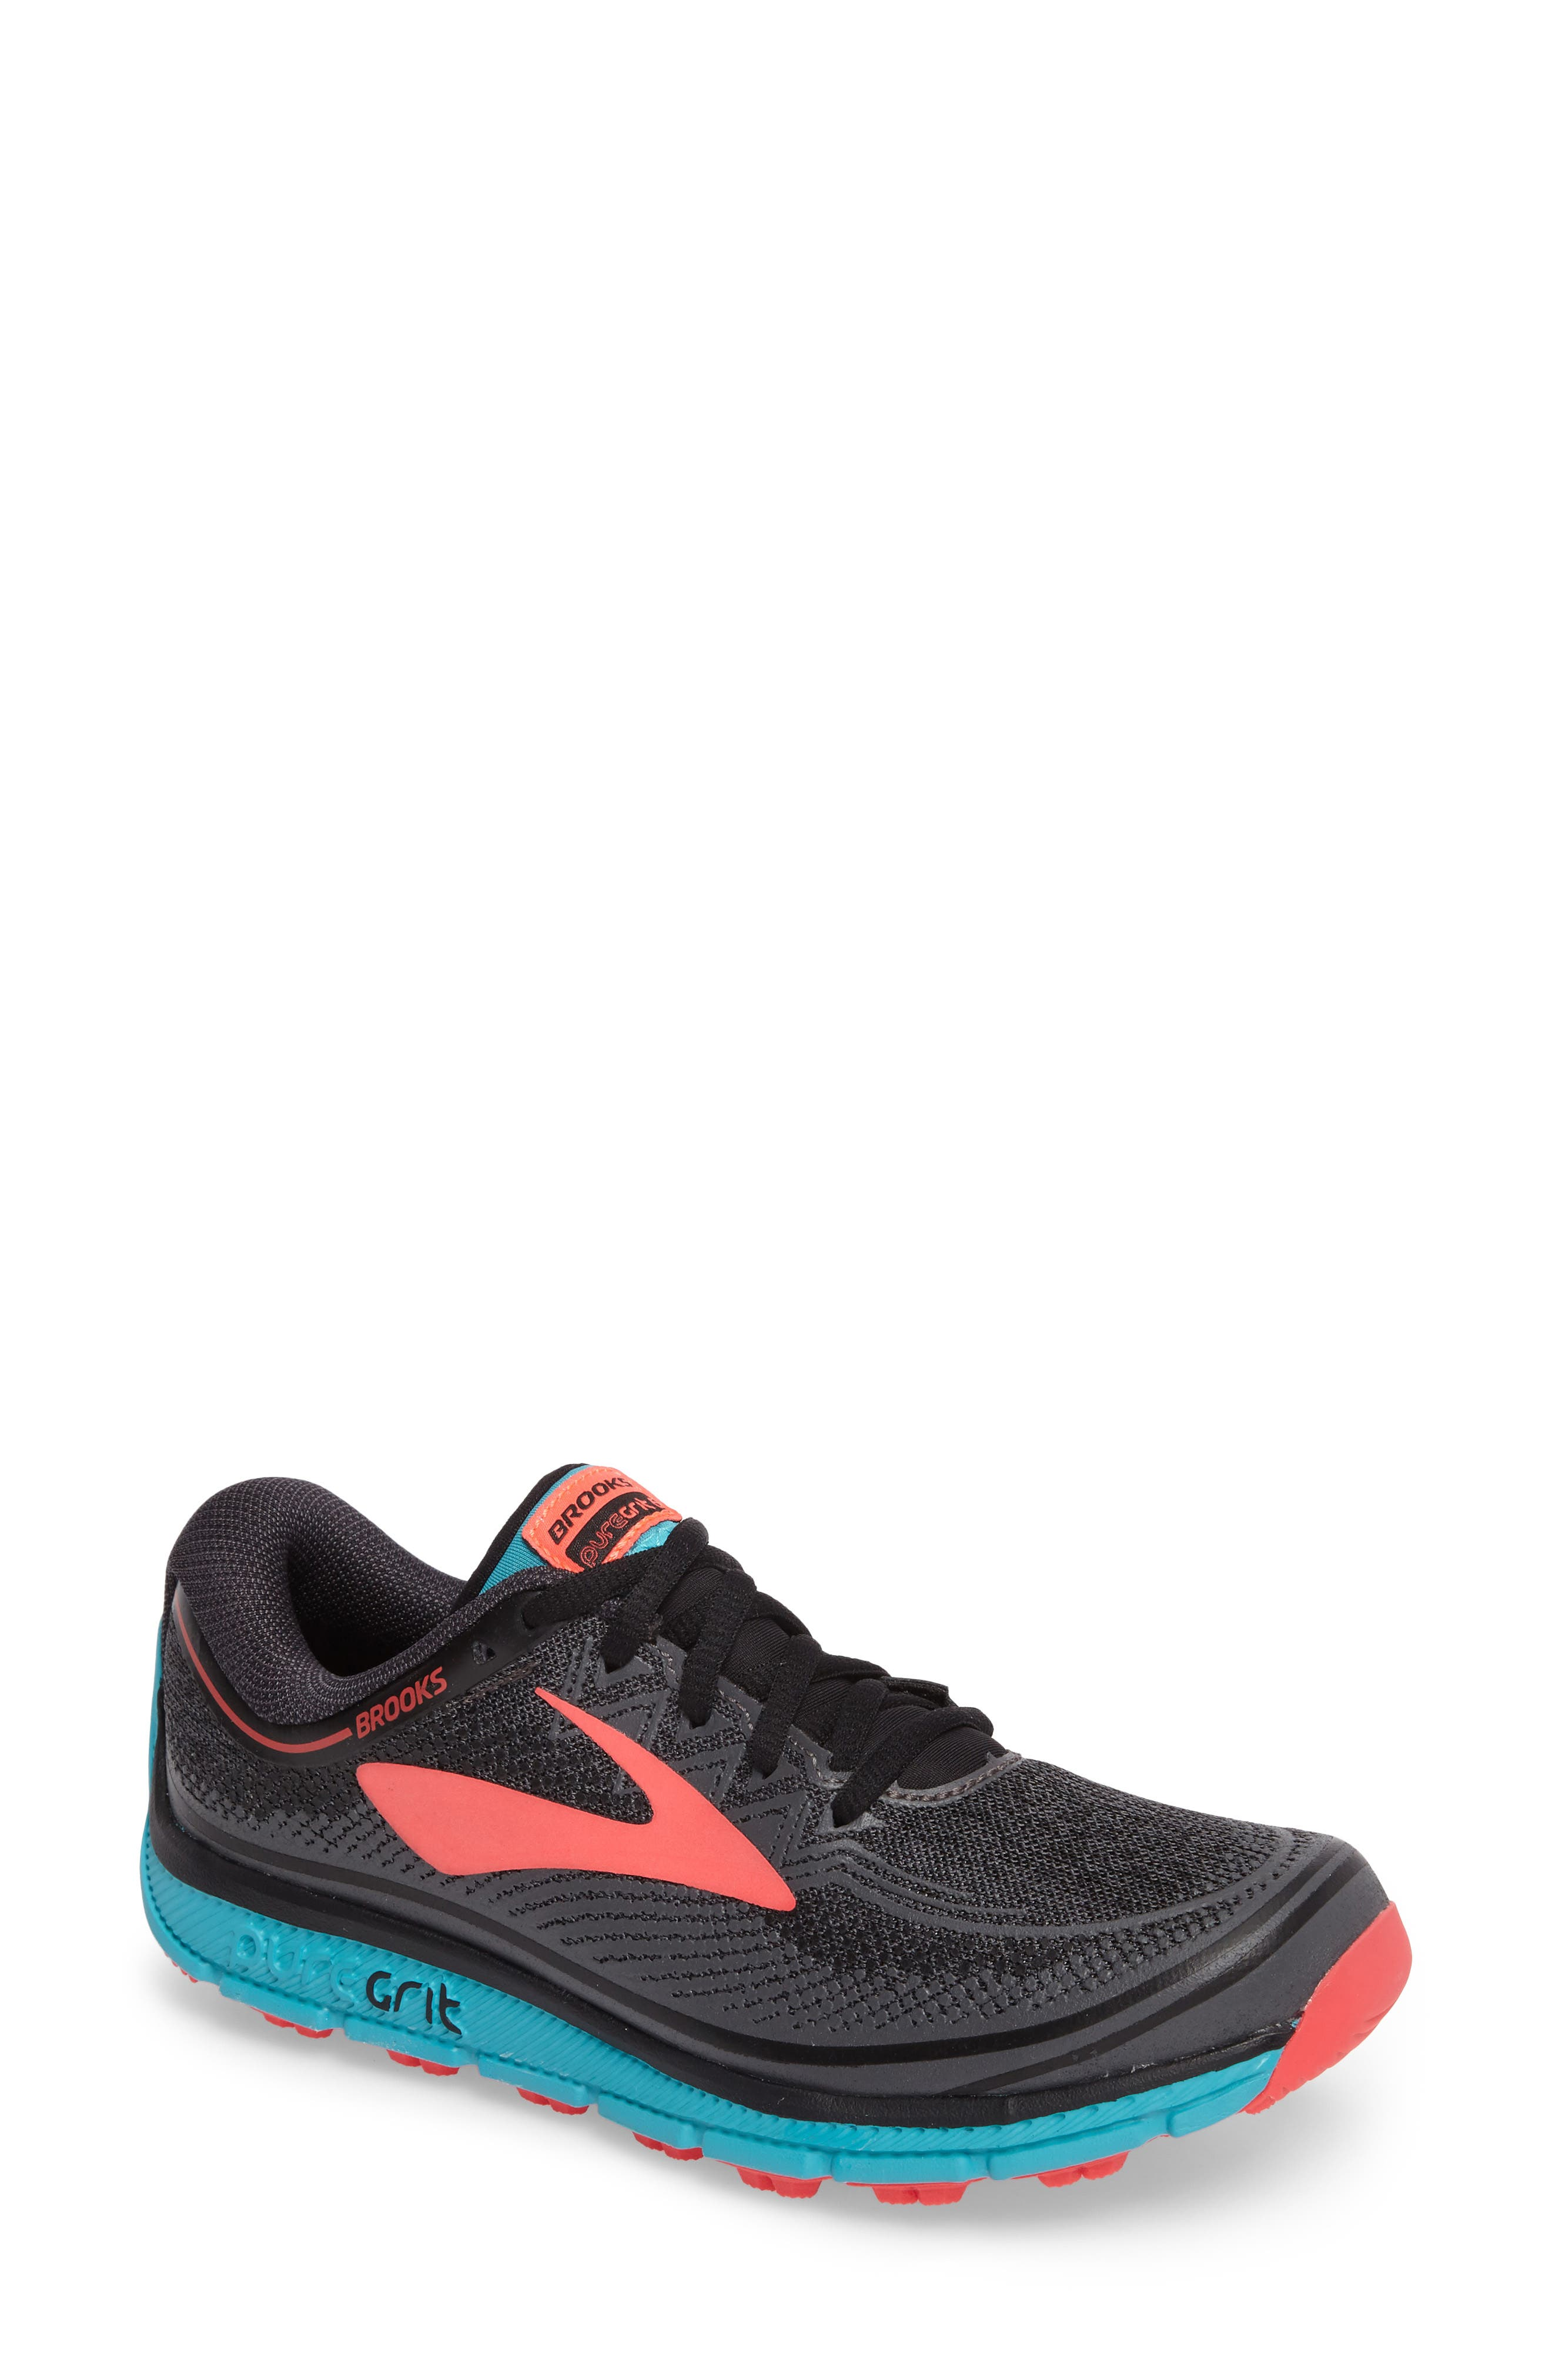 PureGrit 6 Trail Running Shoe,                         Main,                         color, 014